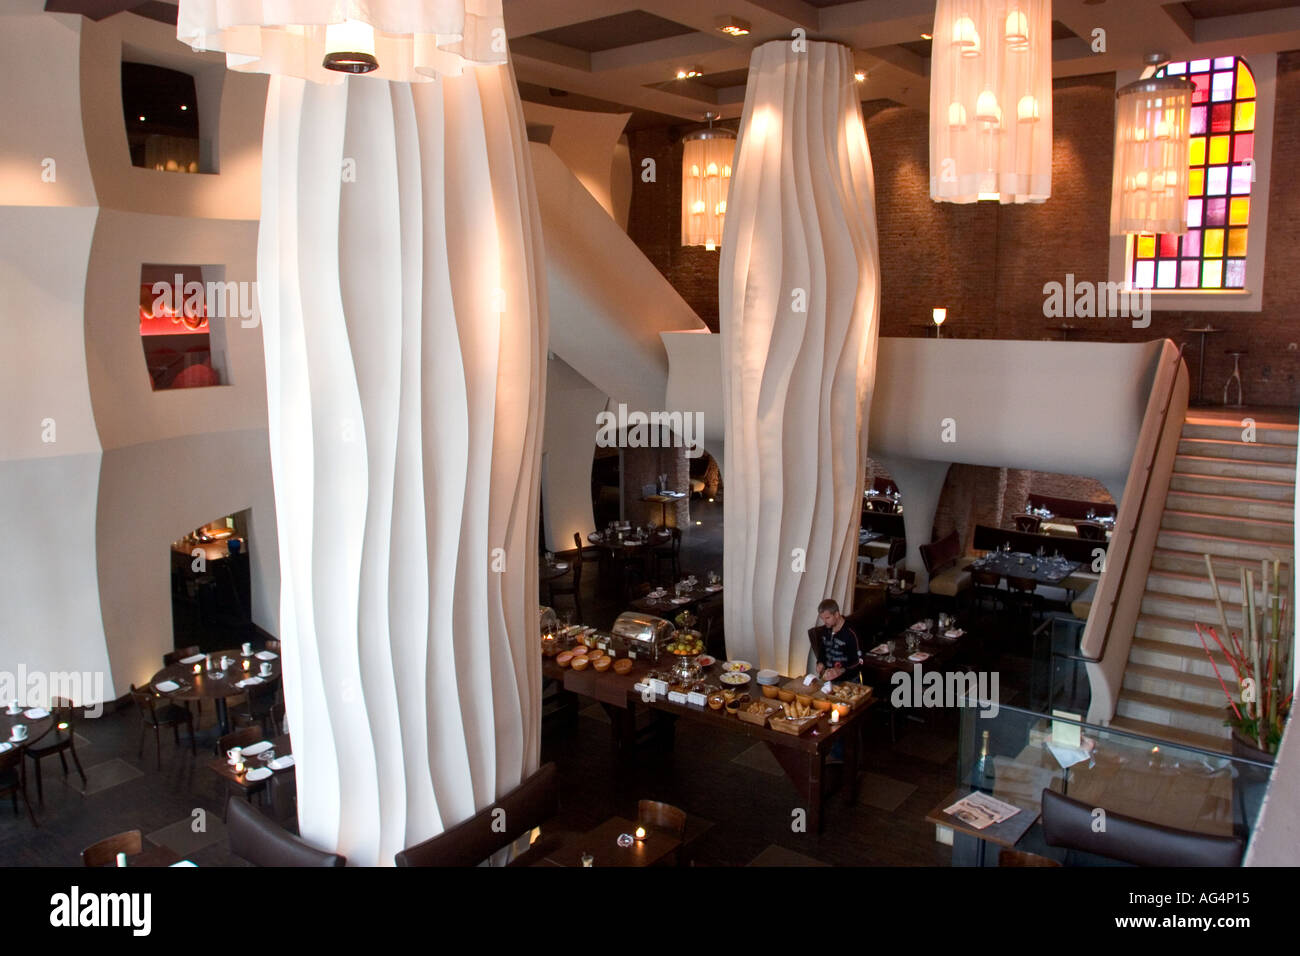 East Hotel Hamburg Germany Hamburg St Pauli East Hotel Restaurant Stock Photo - Alamy